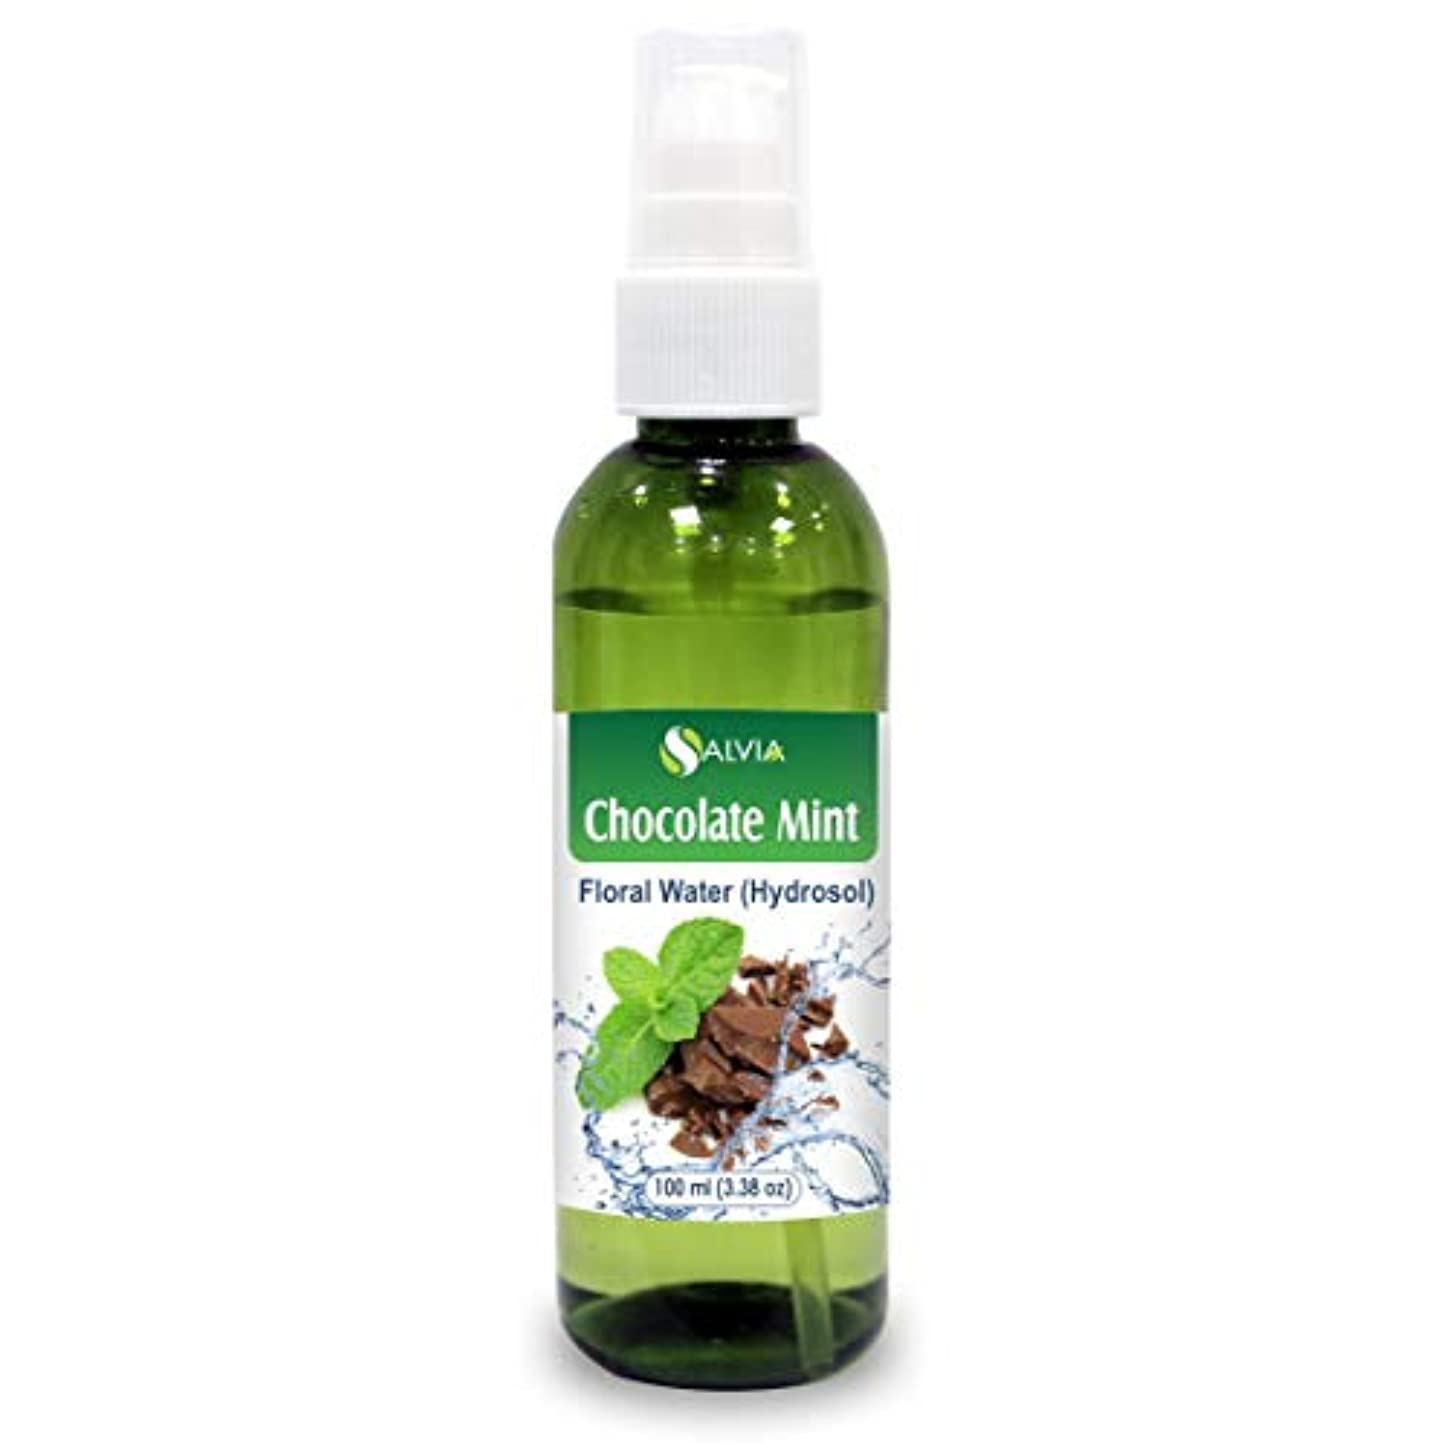 分配しますマナーぬれたChocolate Mint Floral Water 100ml (Hydrosol) 100% Pure And Natural